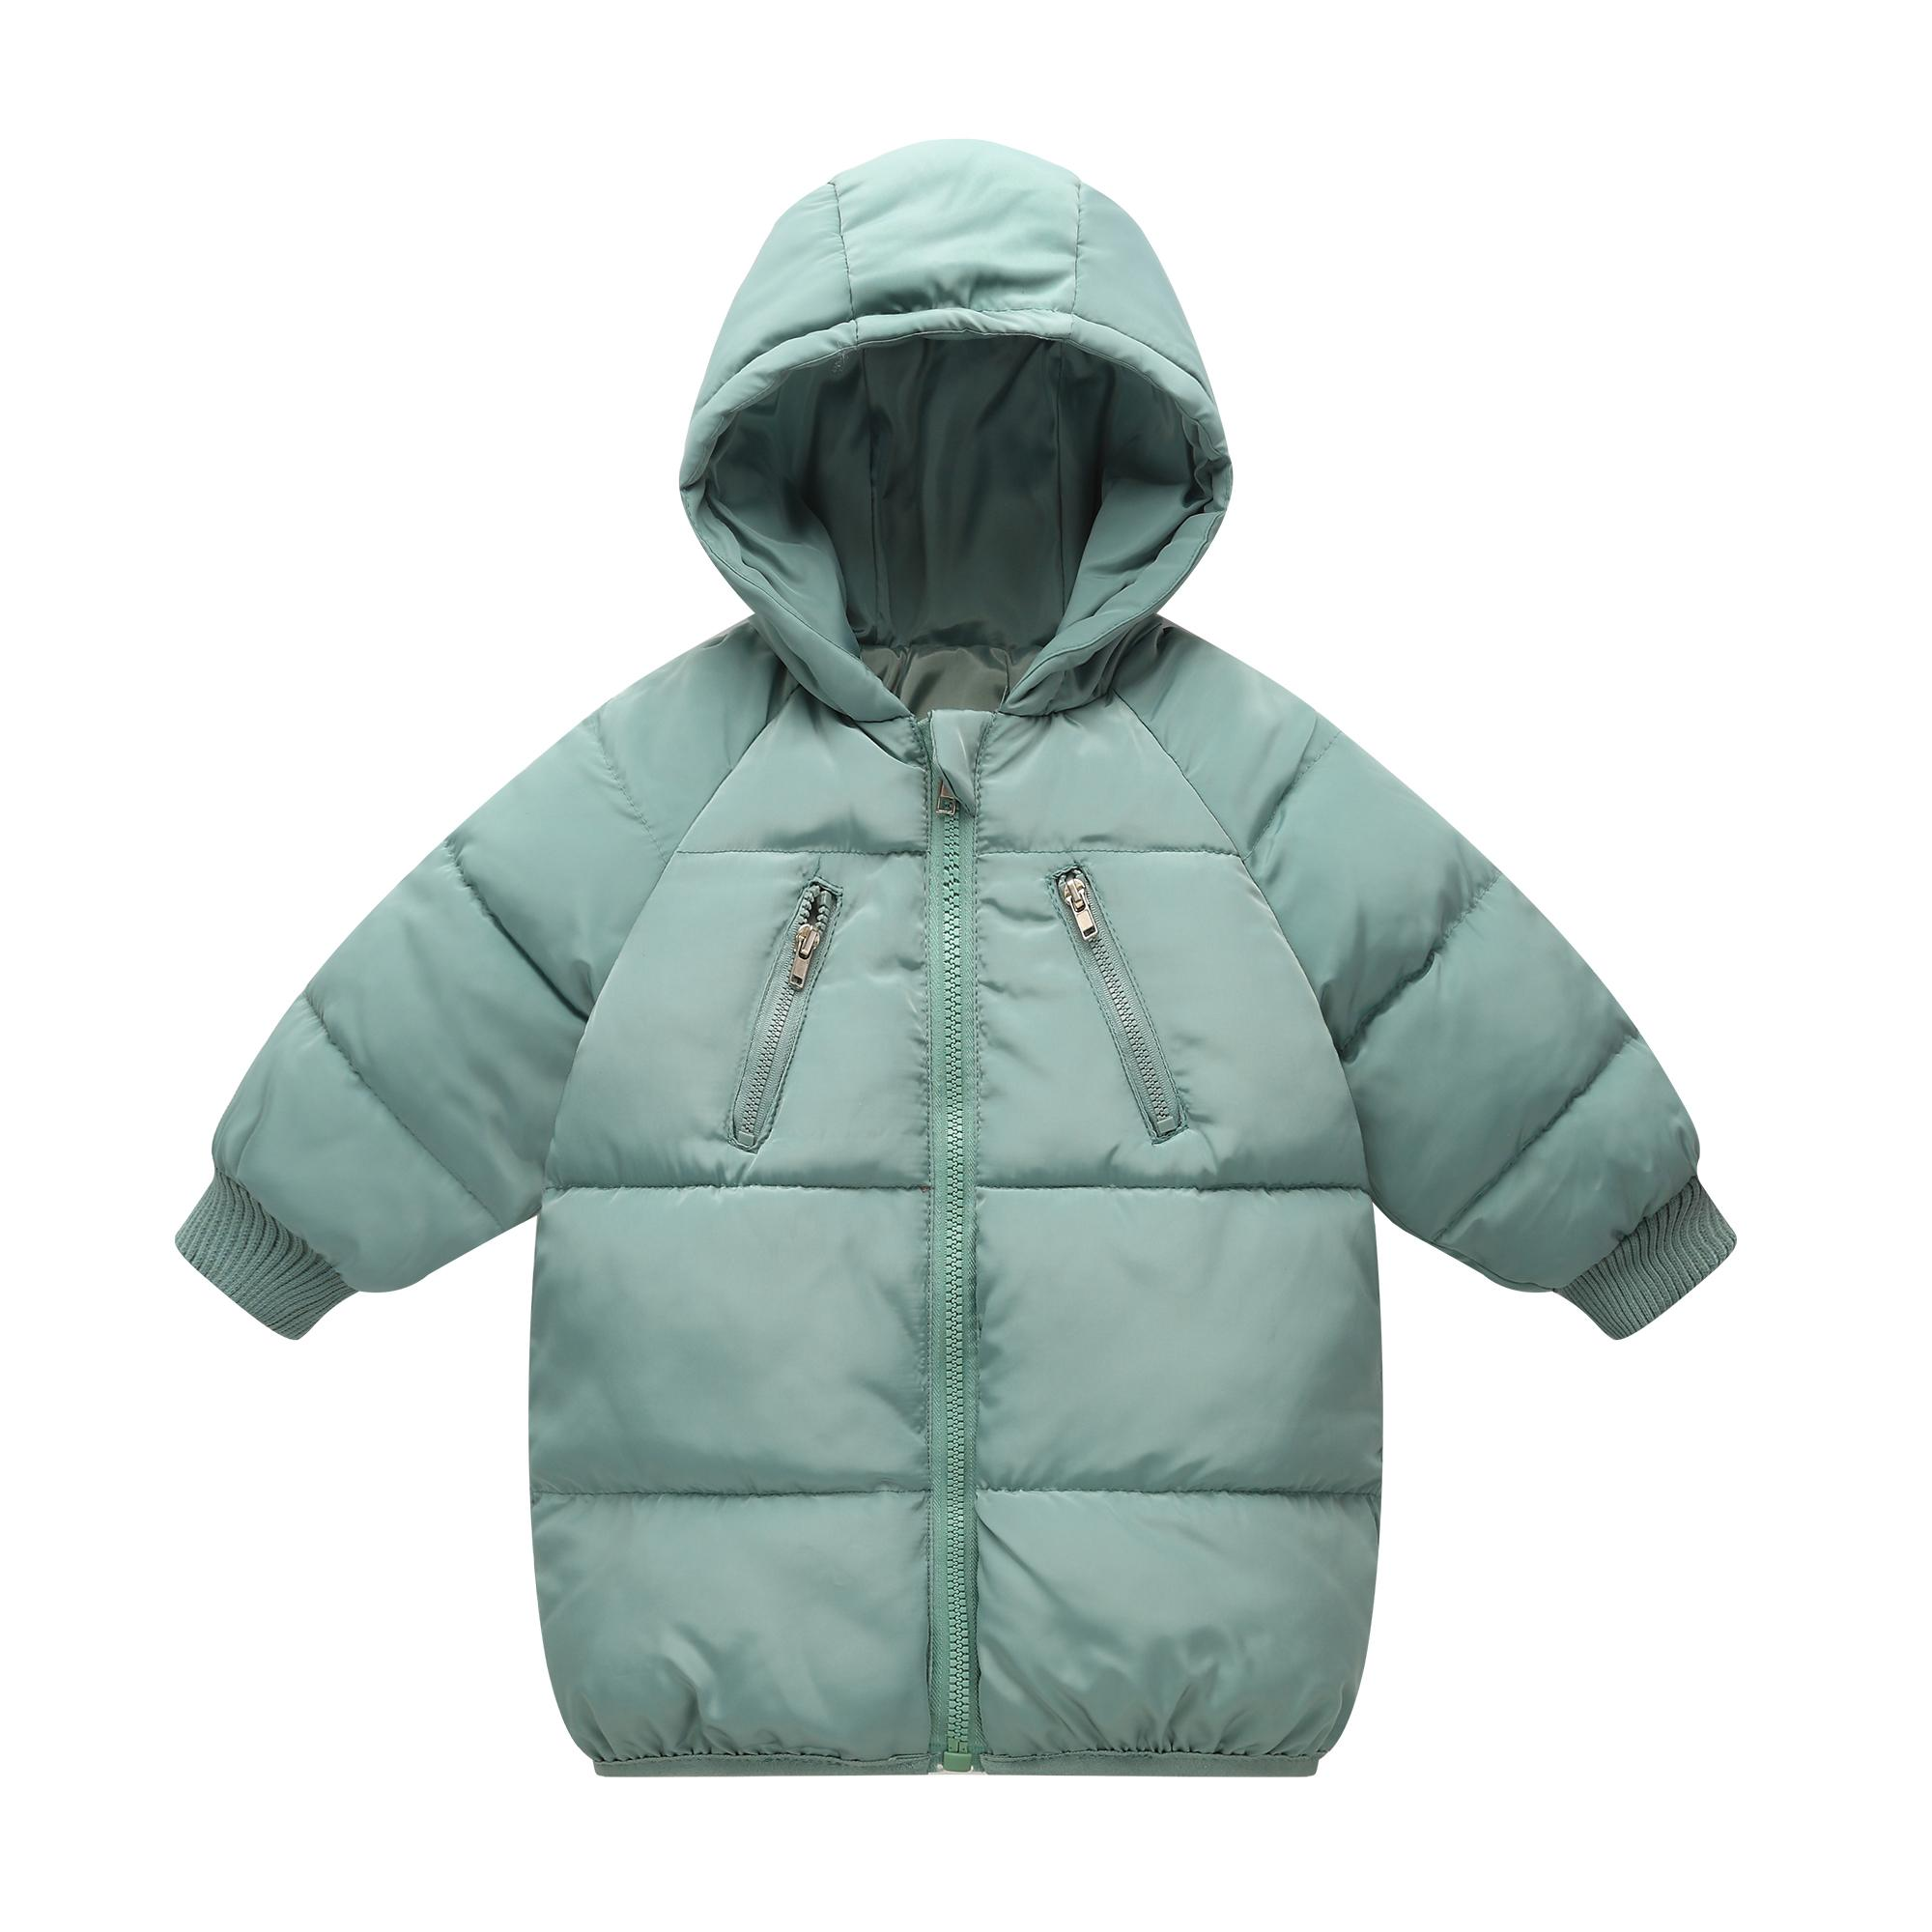 4ce82e3f1e6c New Boys Jackets Parka Baby Outerwear Childen Winter Jackets For ...